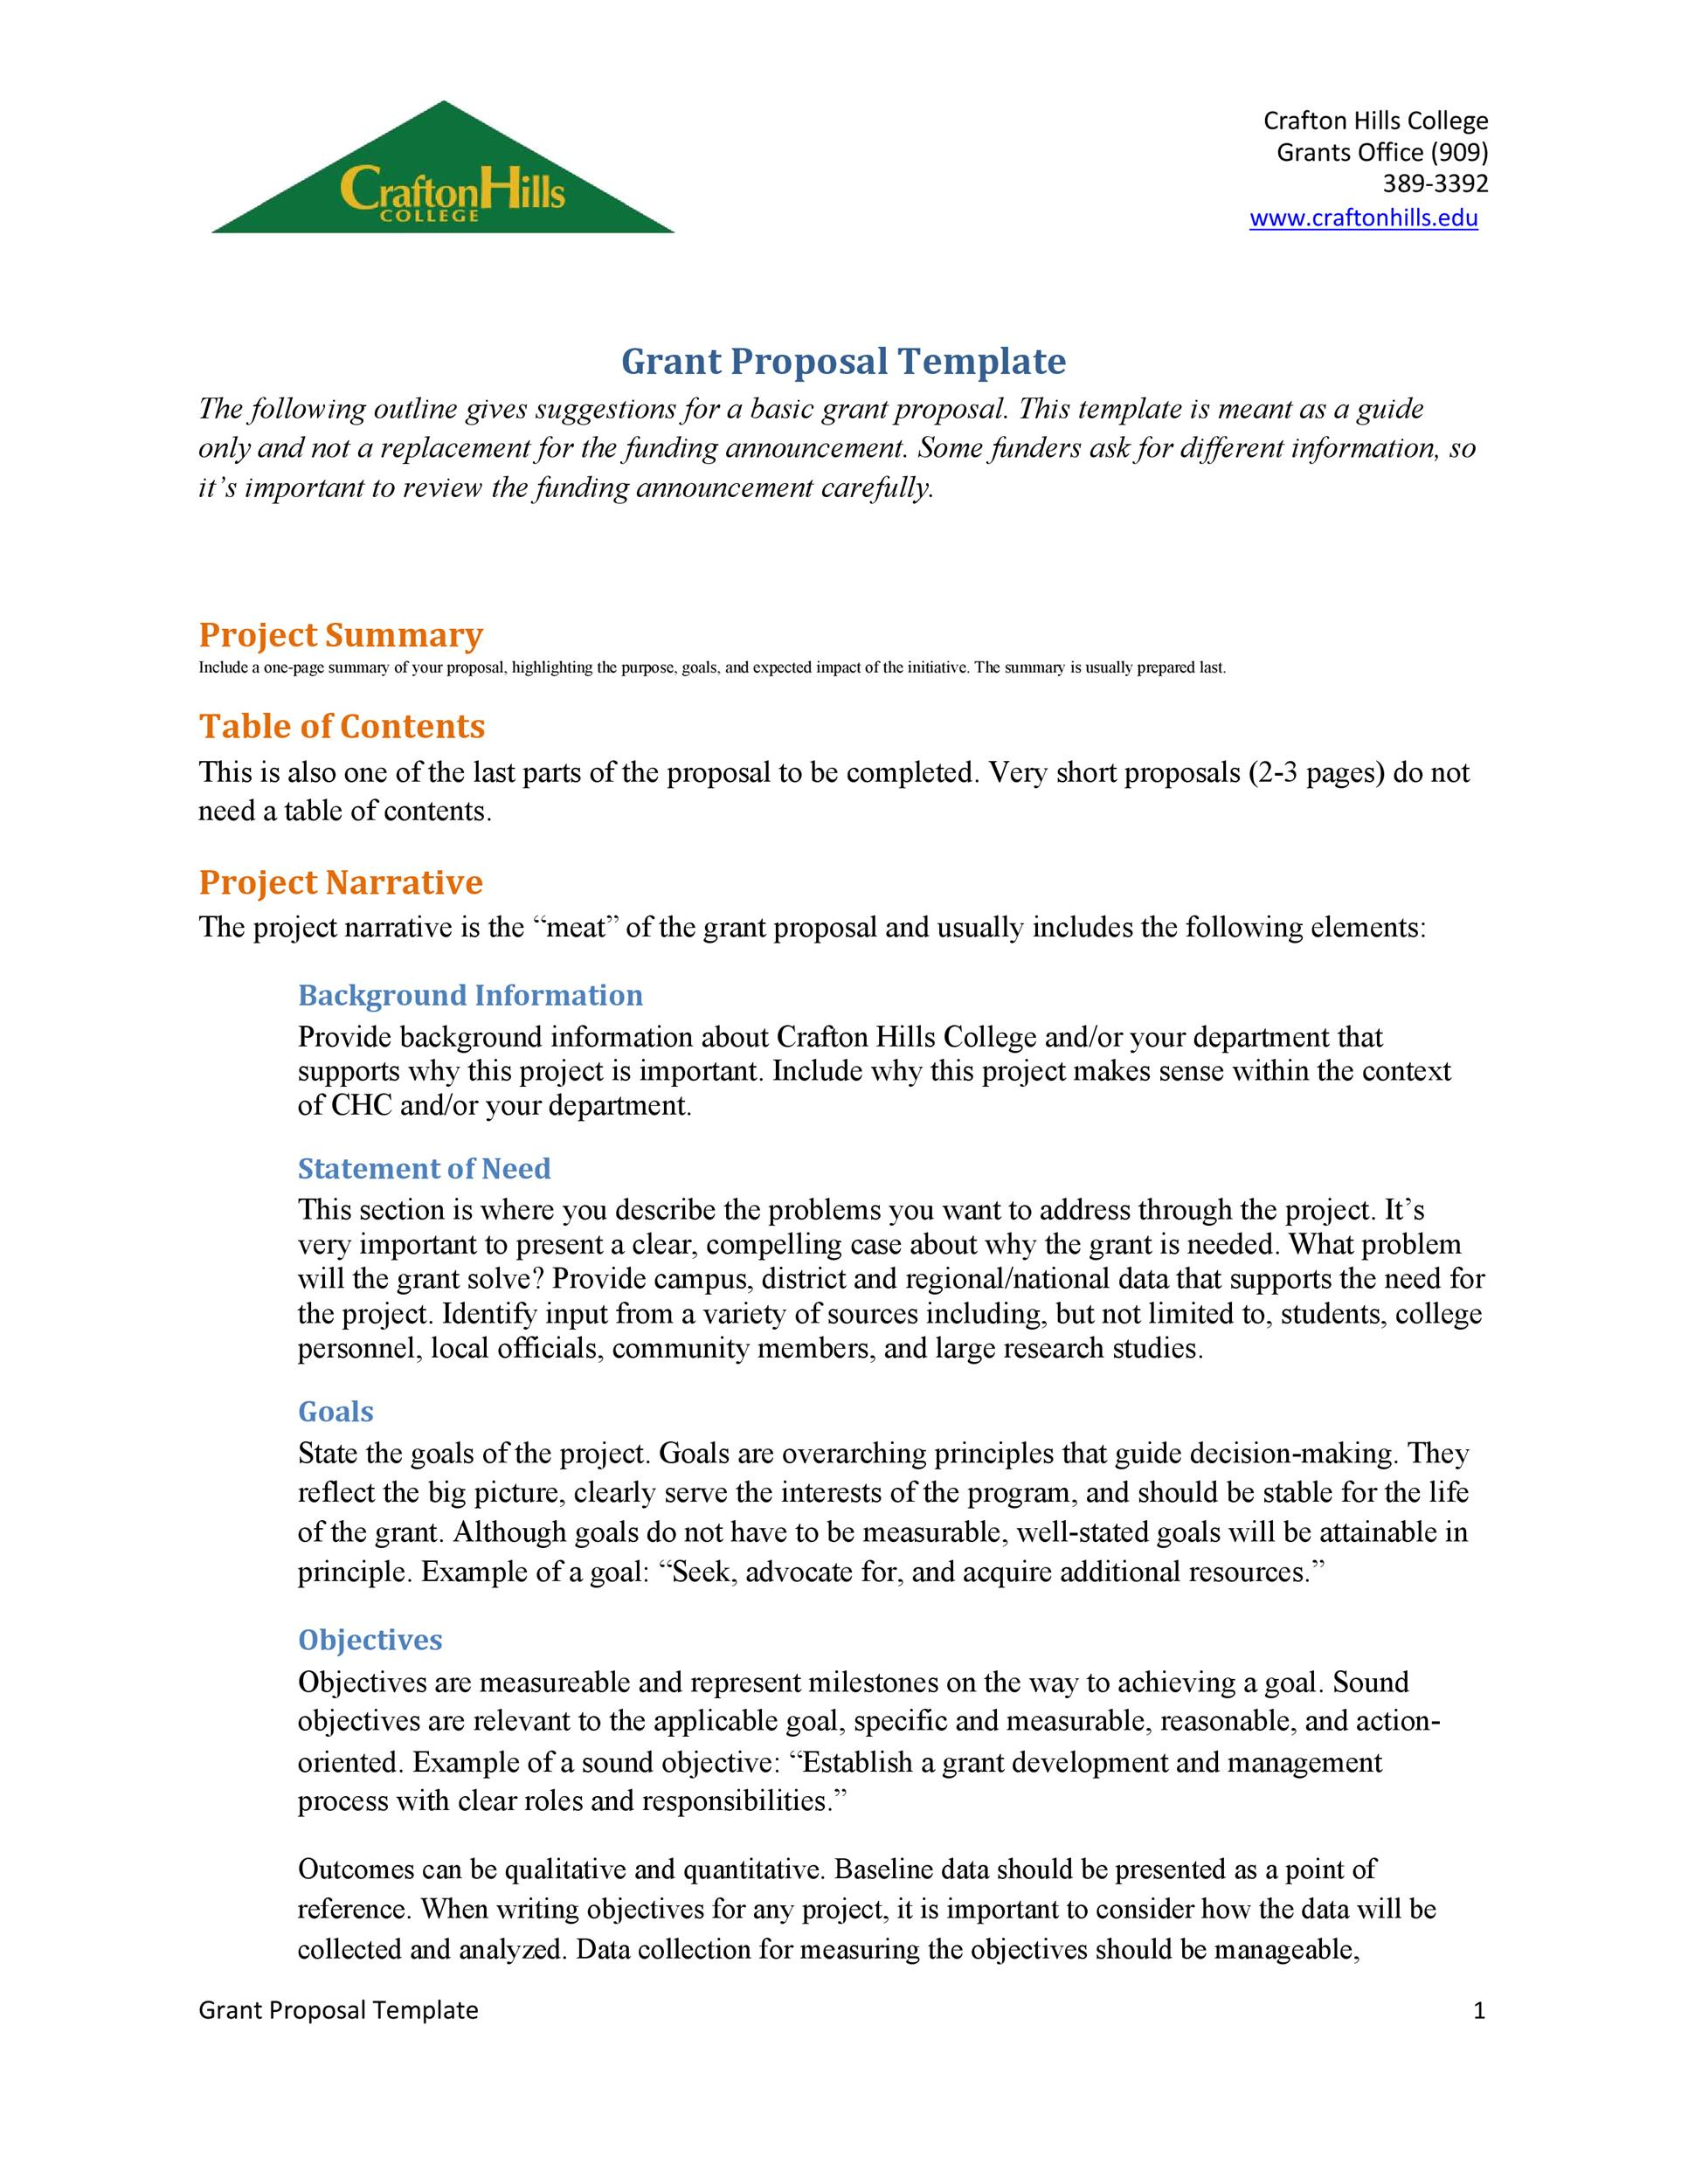 40+ Grant Proposal Templates NSF, Non-Profit, Research ᐅ Template Lab